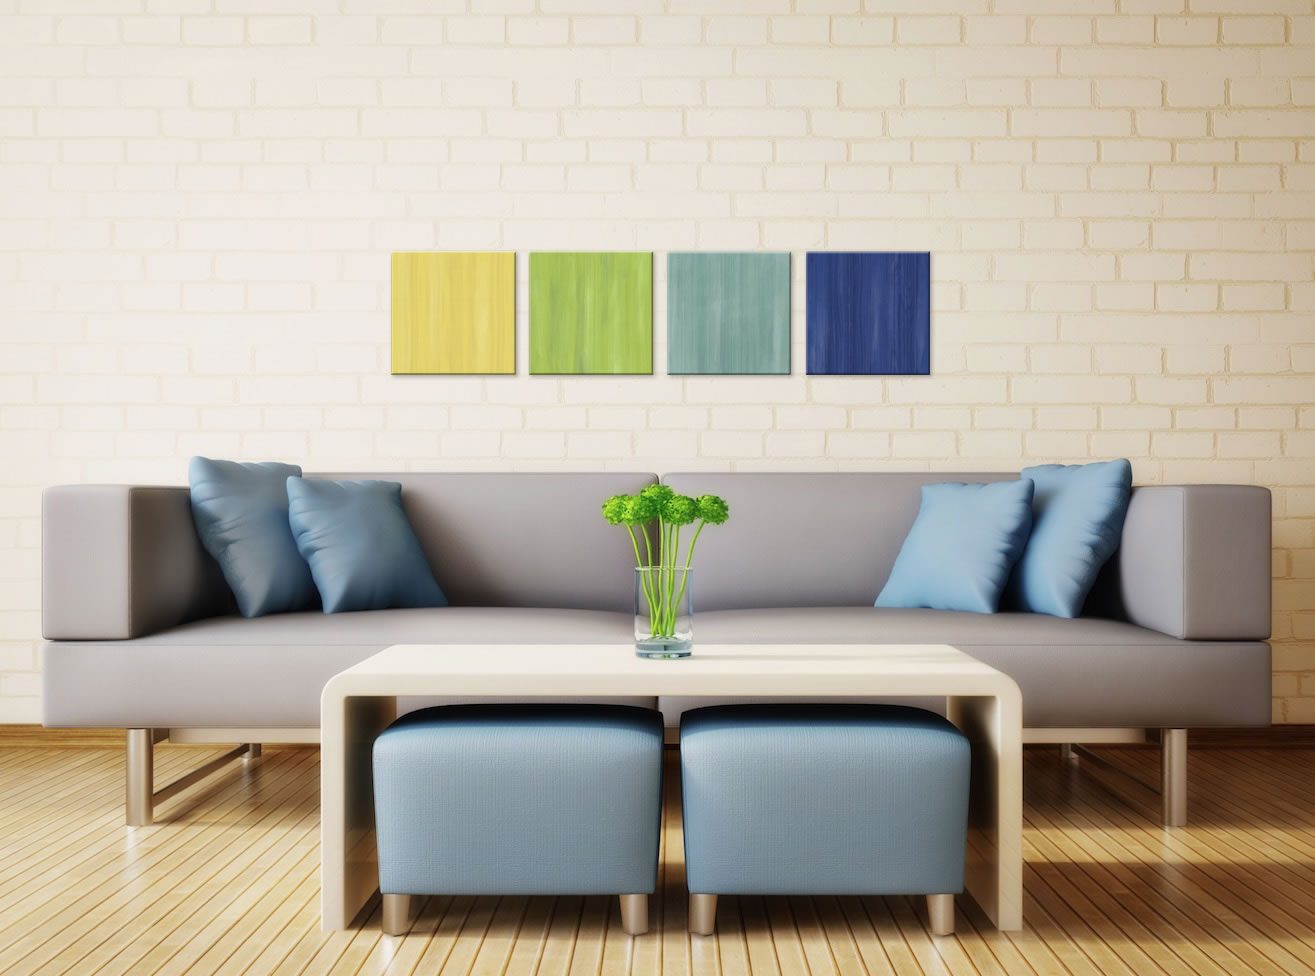 Earth and Sky - Colorful Contemporary Accents by Celeste Reiter - Lifestyle Image